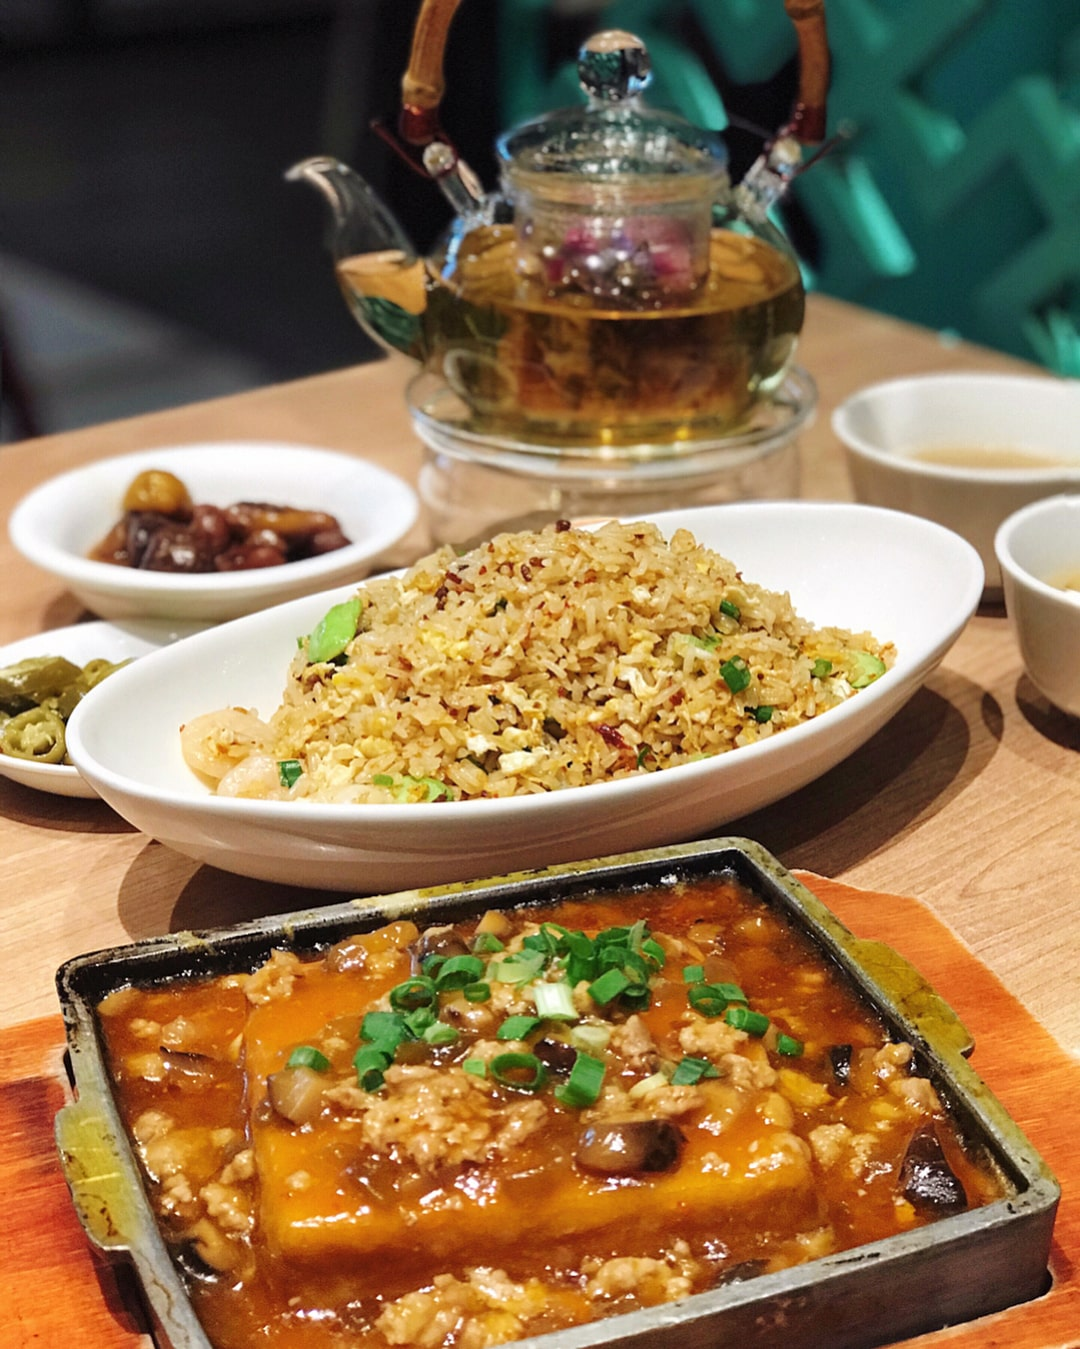 paradise classic Hot Plate Tofu with Preserved Cai Xin and Minced Pork and Egg Fried Rice